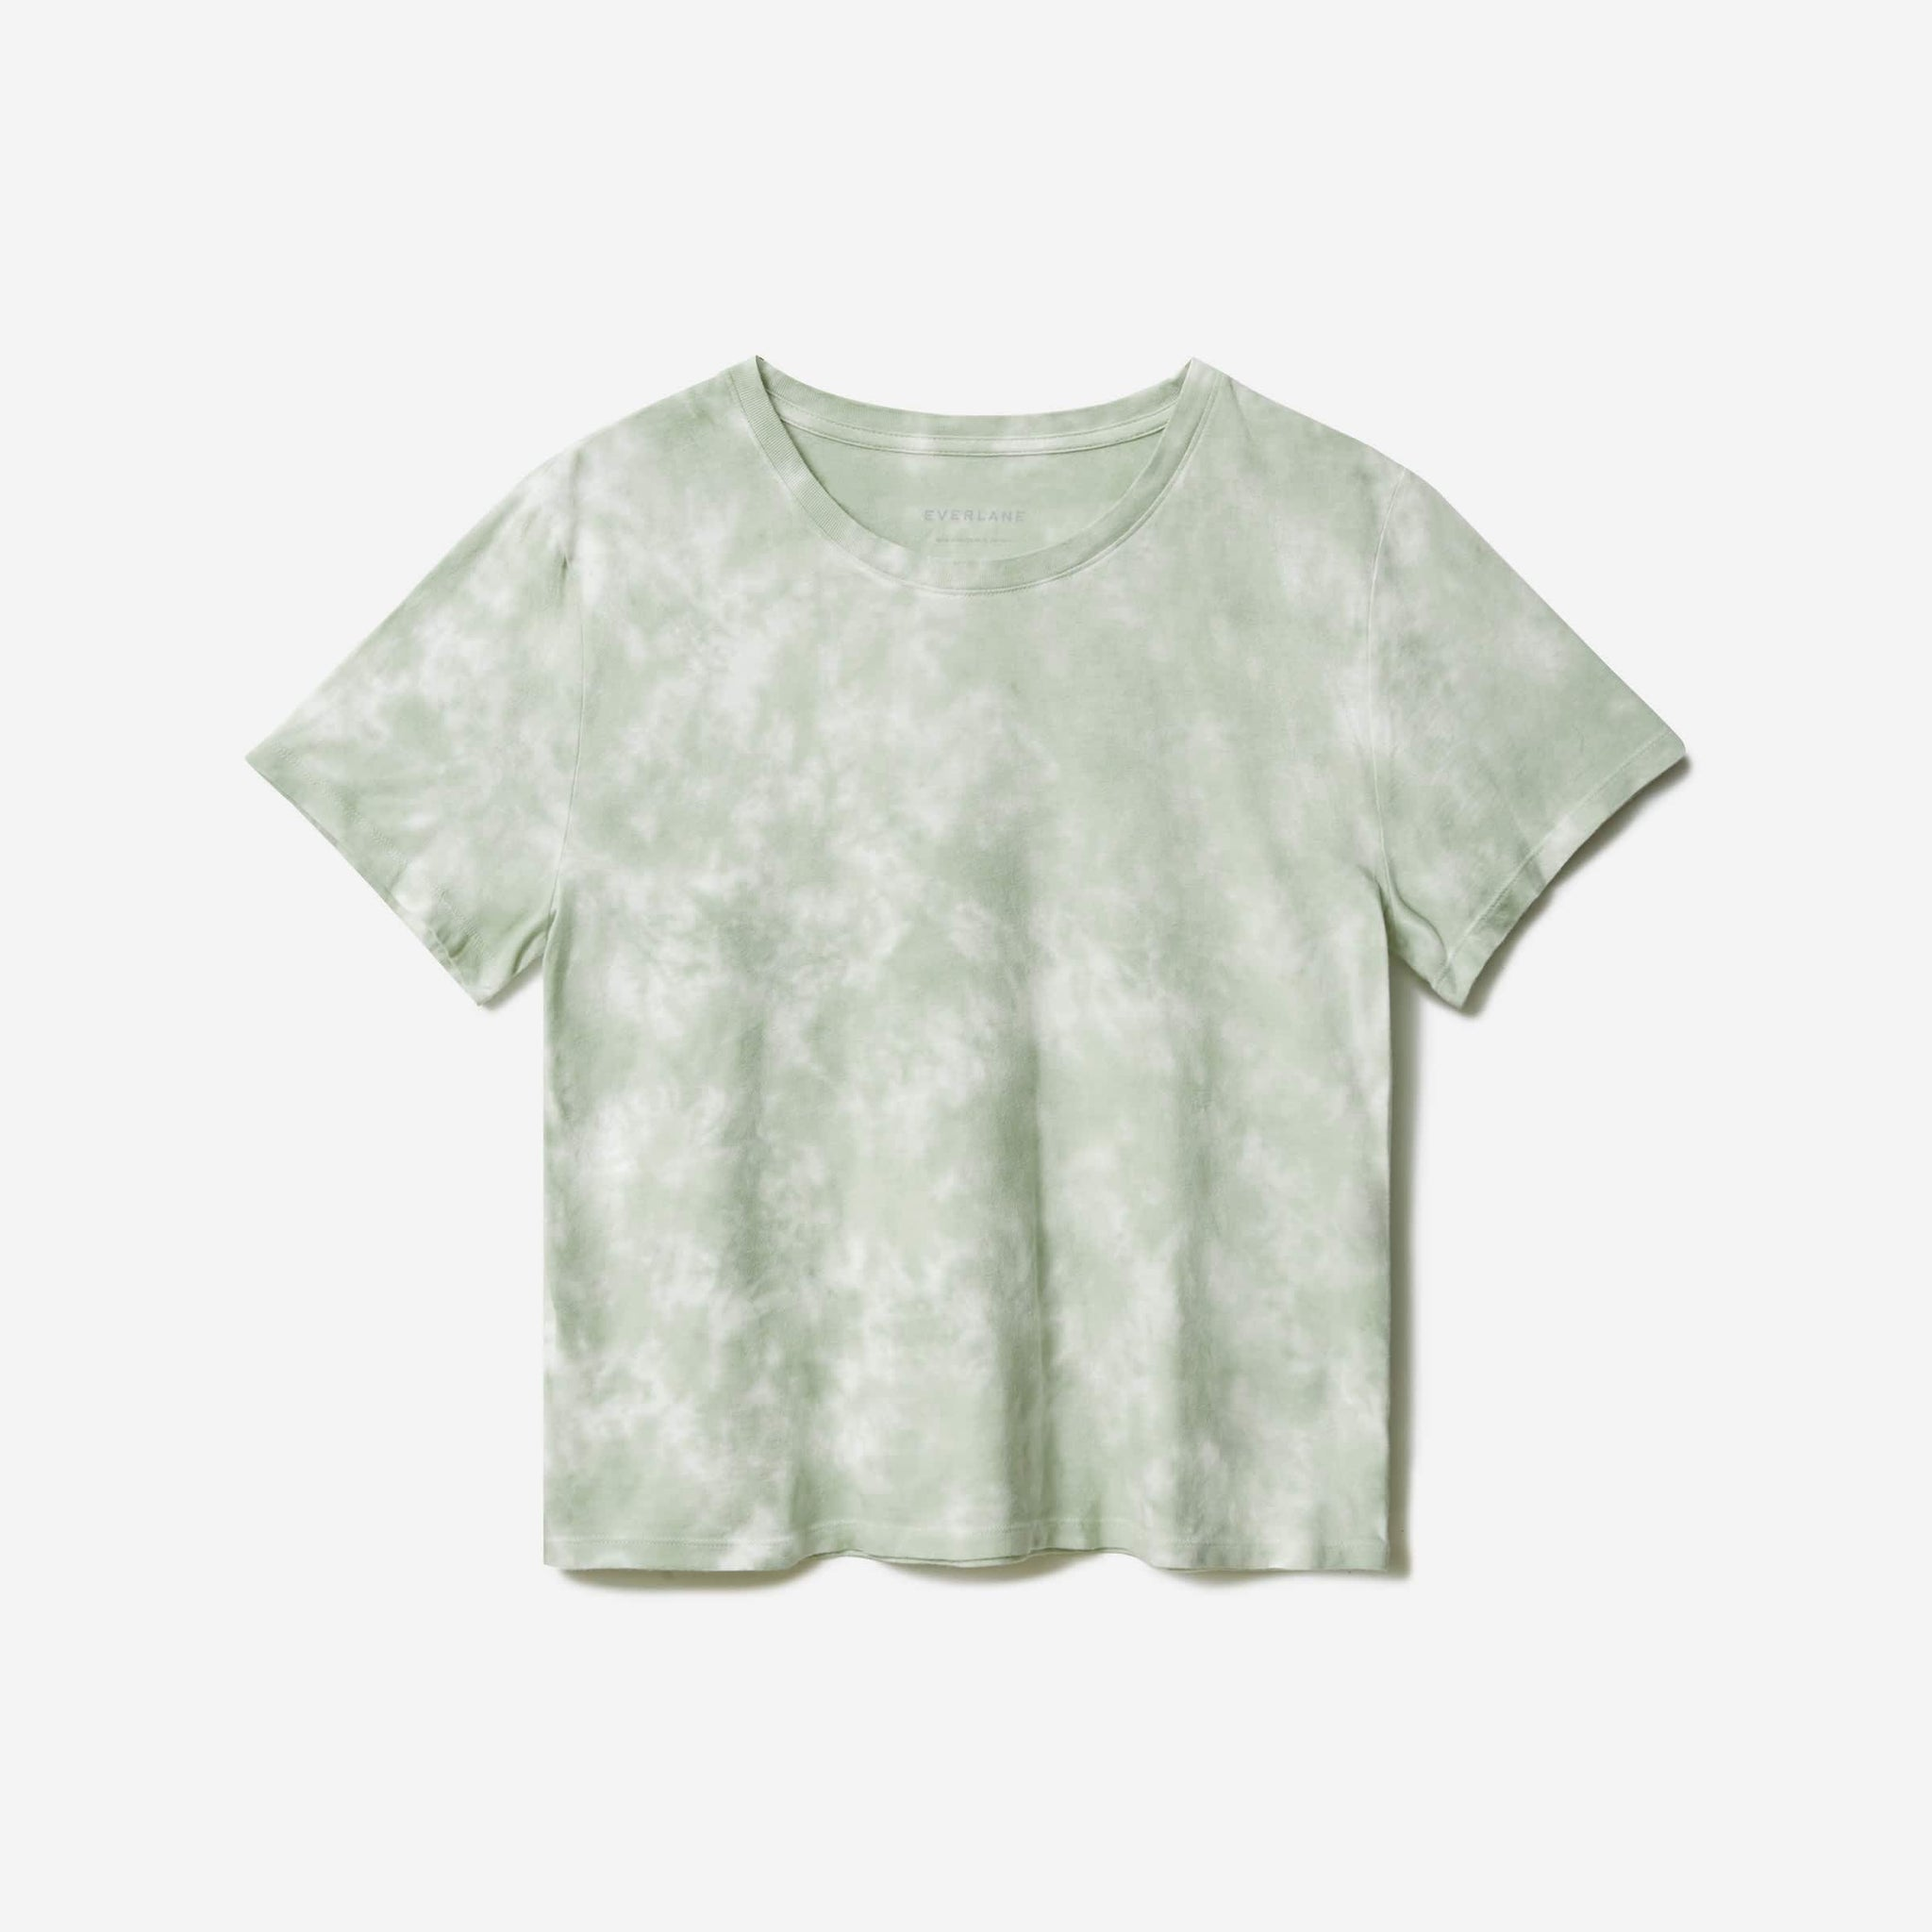 The Tie-Dye Box-Cut Tee